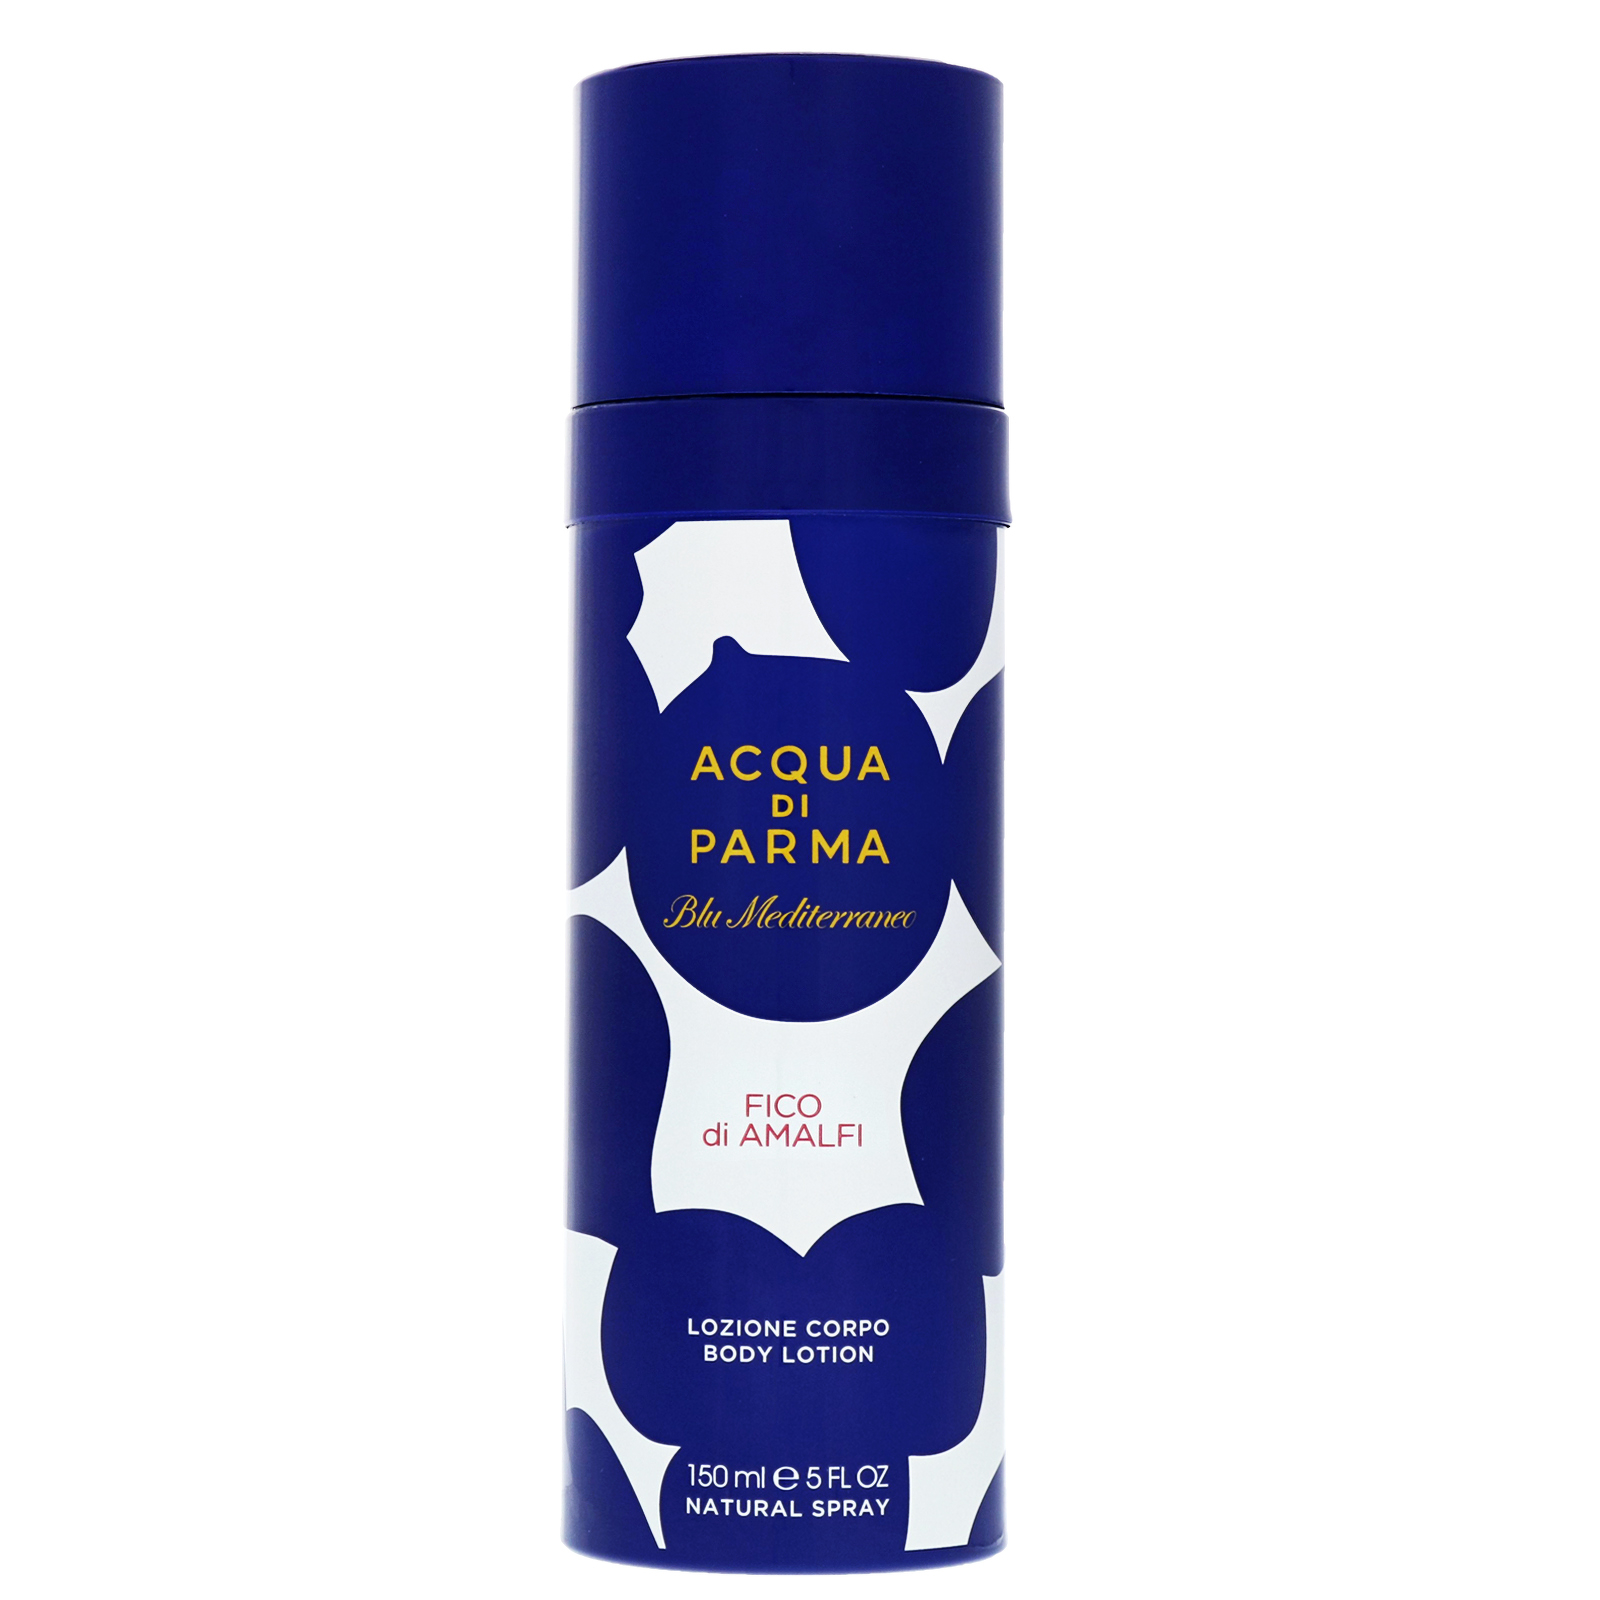 Acqua Di Parma Blu Mediterraneo - Fico Di Amalfi Body Lotion Spray 150ml